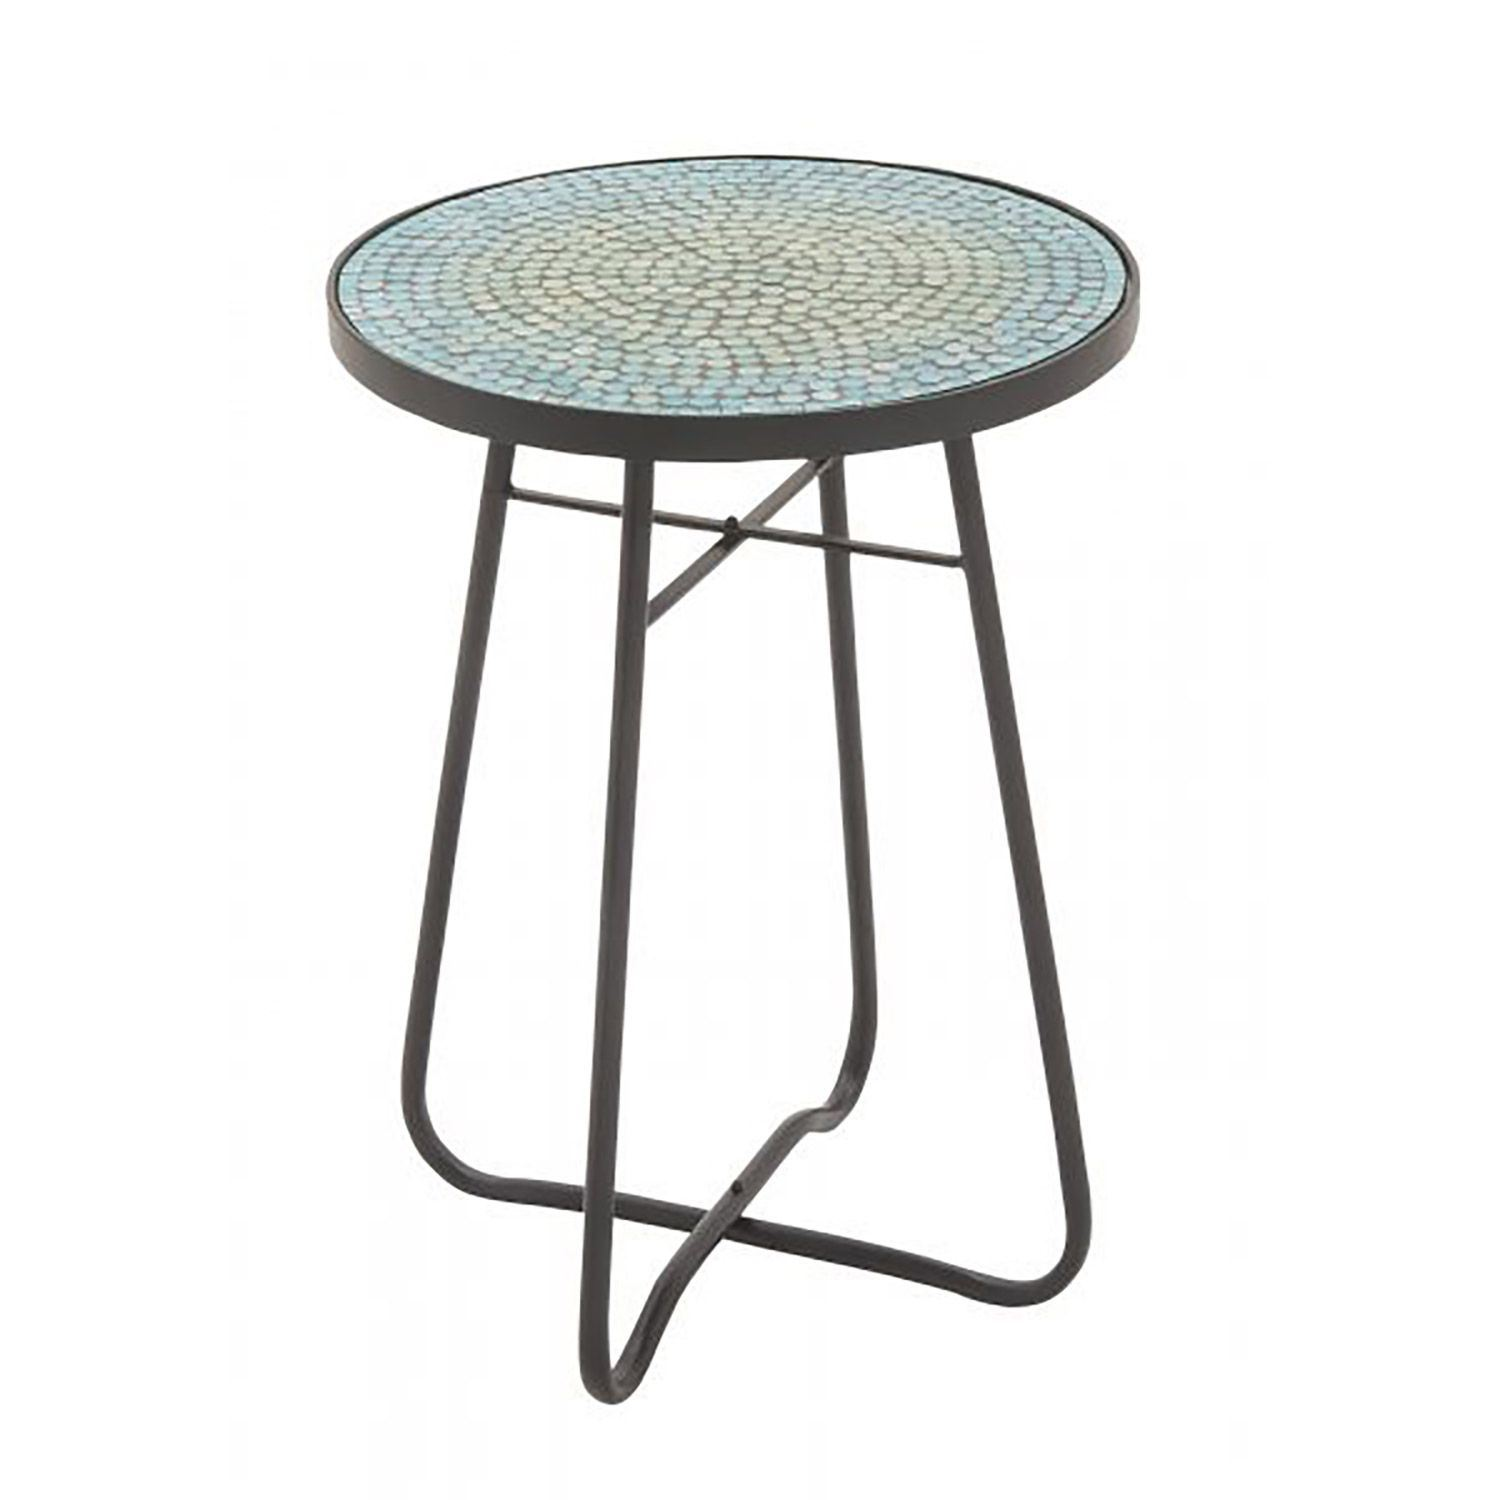 Torquoise Glass Round Accent Table 177 45626 Uma